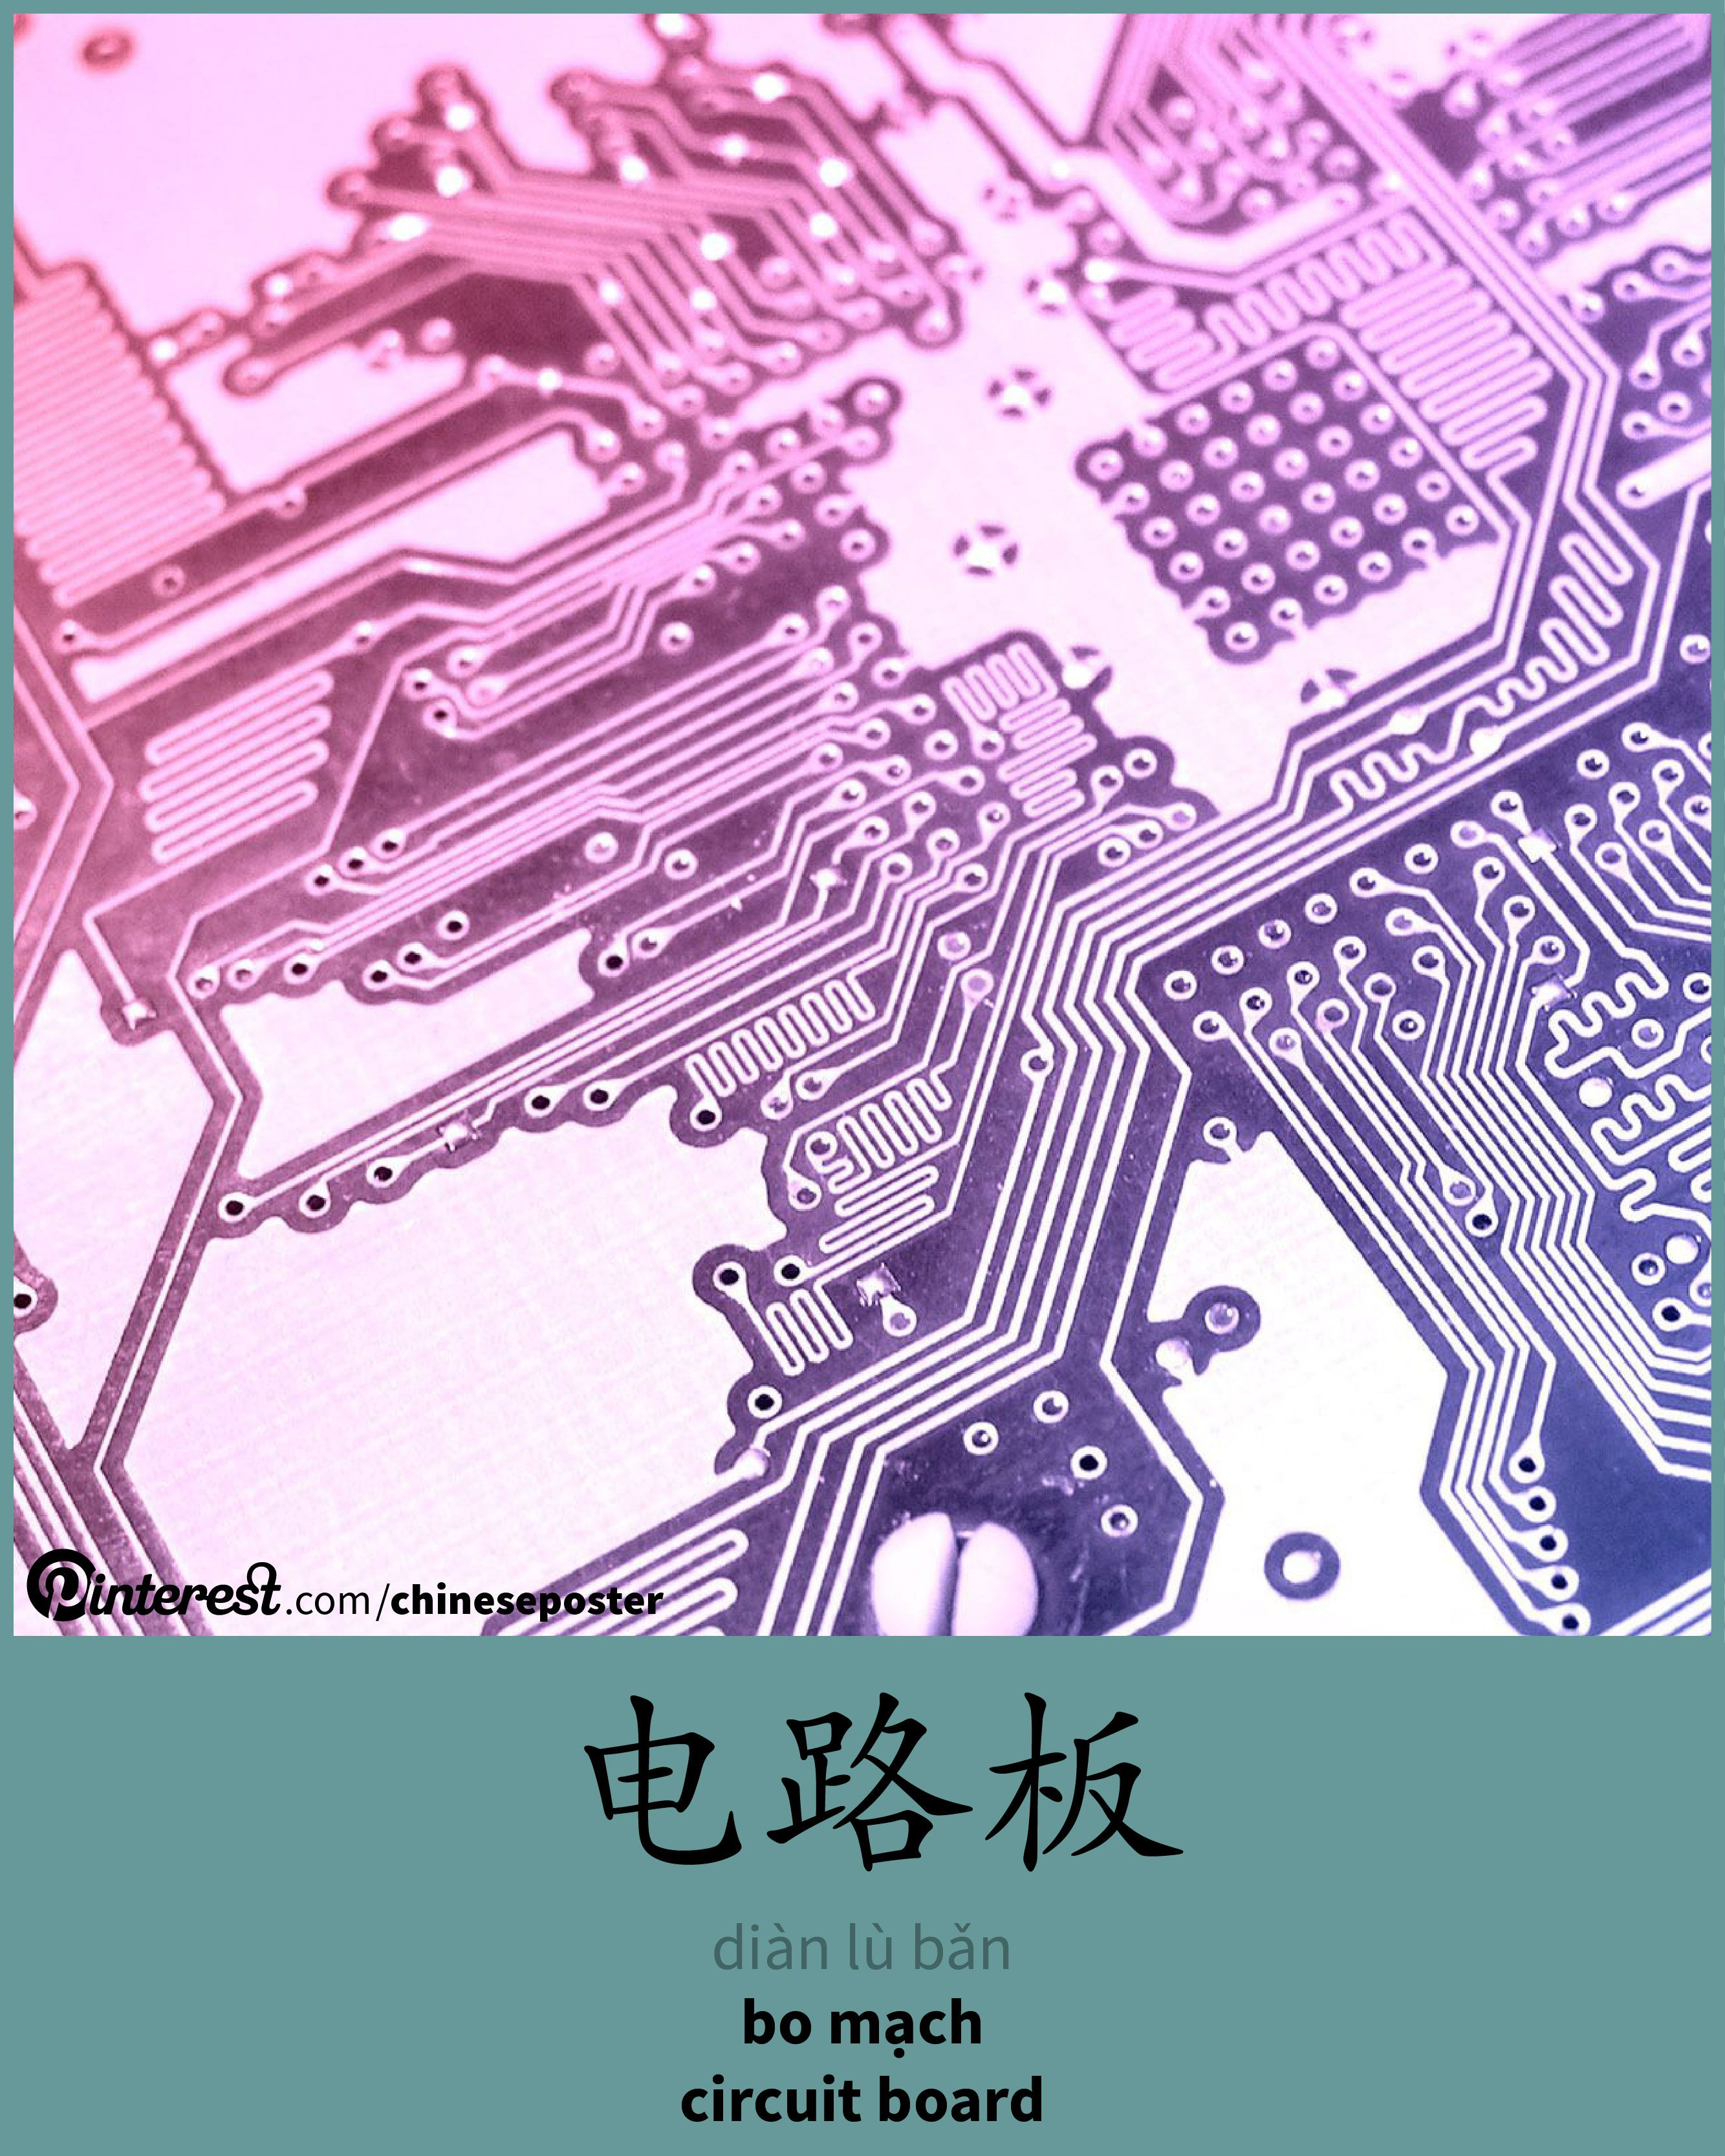 Dinl Bn Bo Mch Circuit Board Chinese Words Pics Photos Desktop Wallpapers Printed Pictures